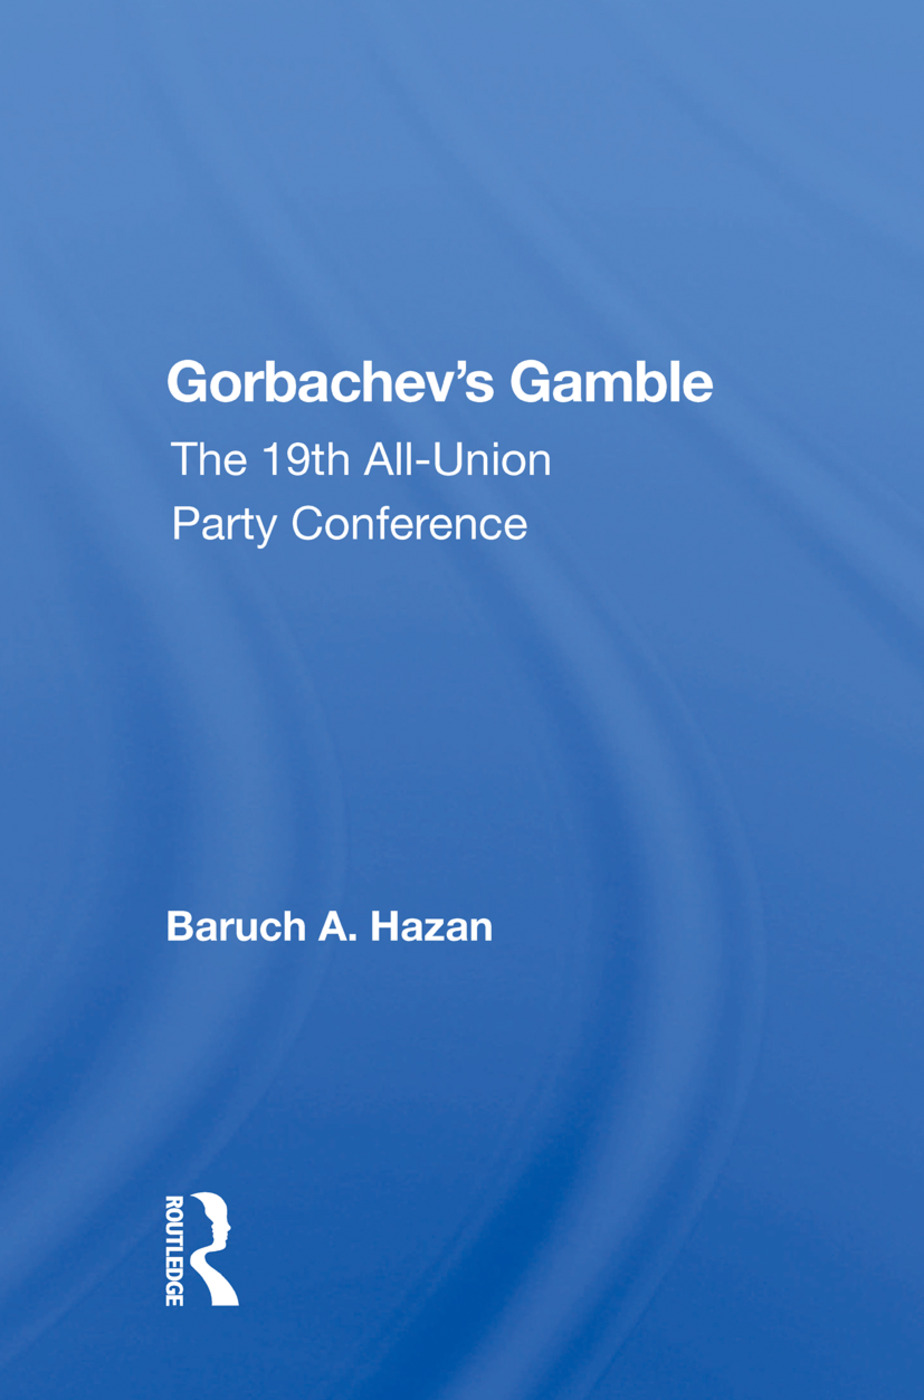 Gorbachev's Gamble: The 19th All-Union Party Conference, 1st Edition (Hardback) book cover